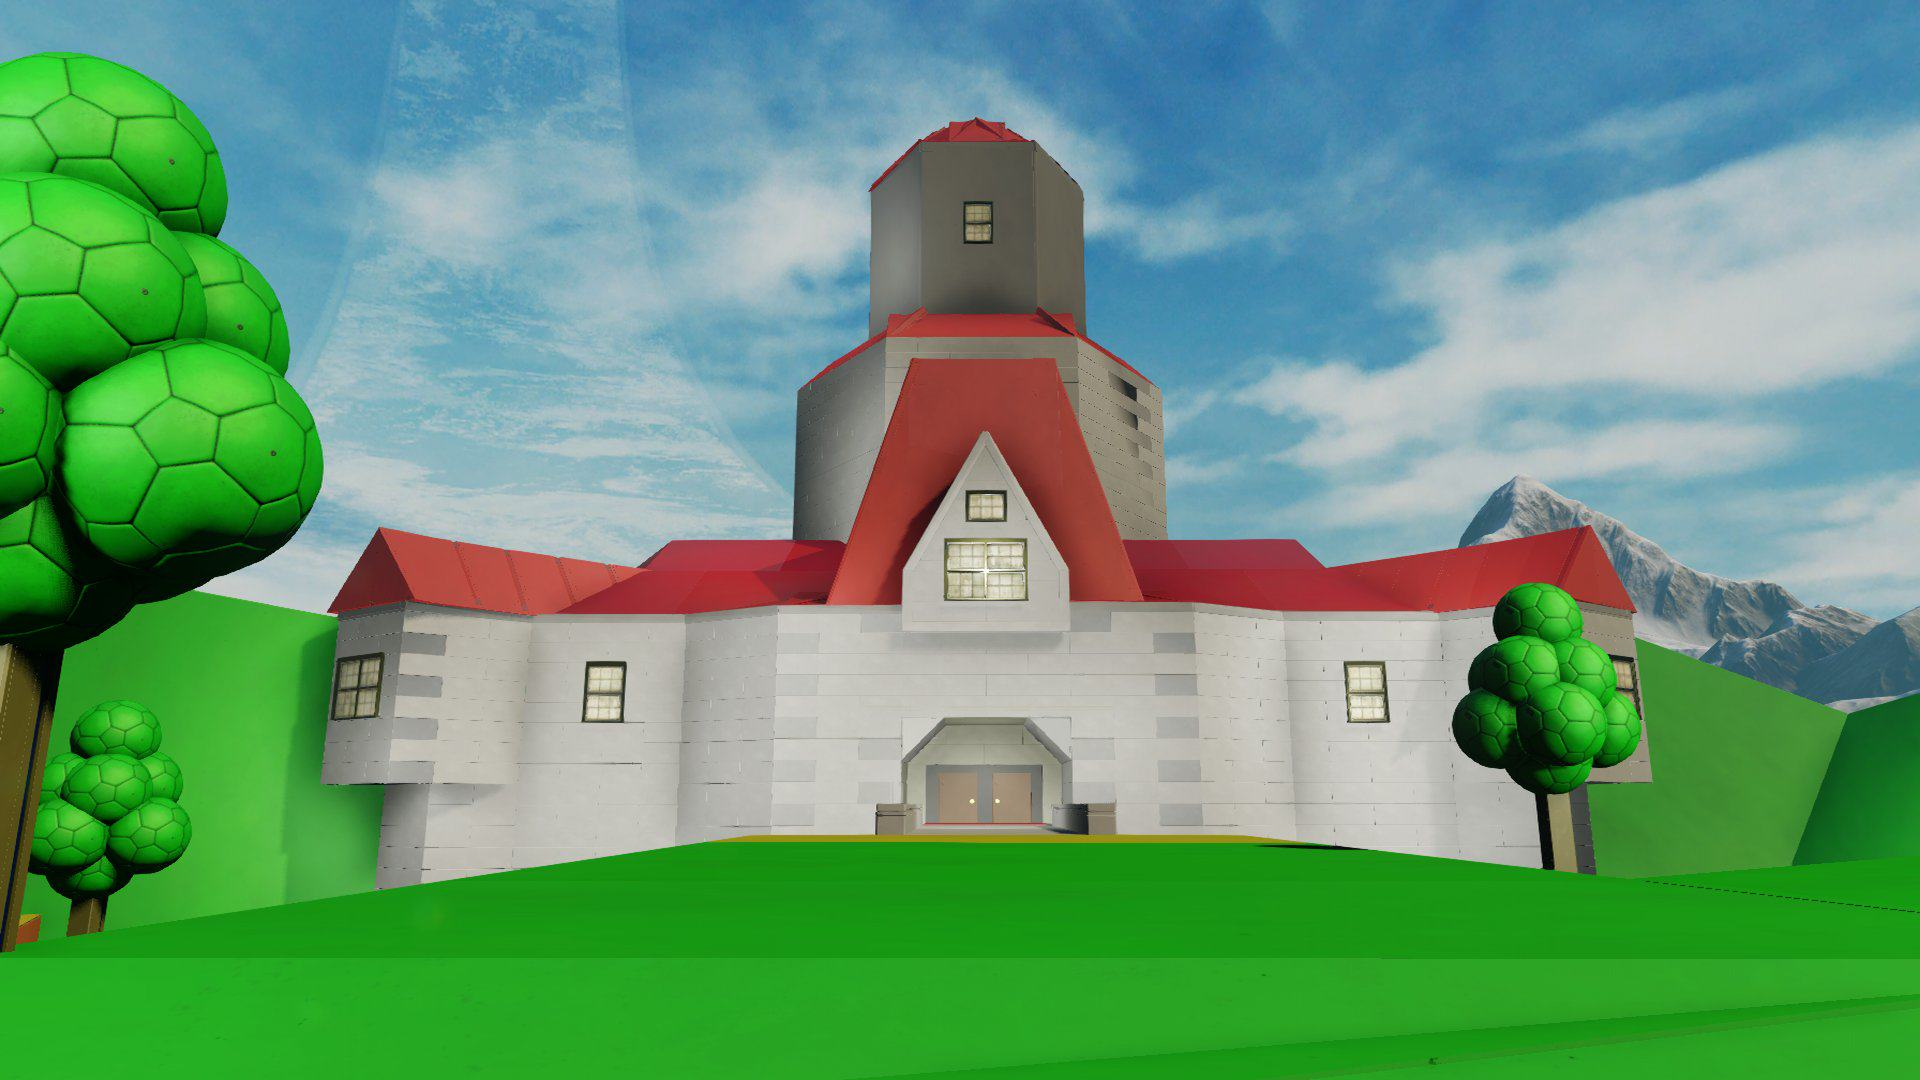 See Super Mario 64s Peach Castle Faithfully Recreated in Halo 5 7uwz5Uk